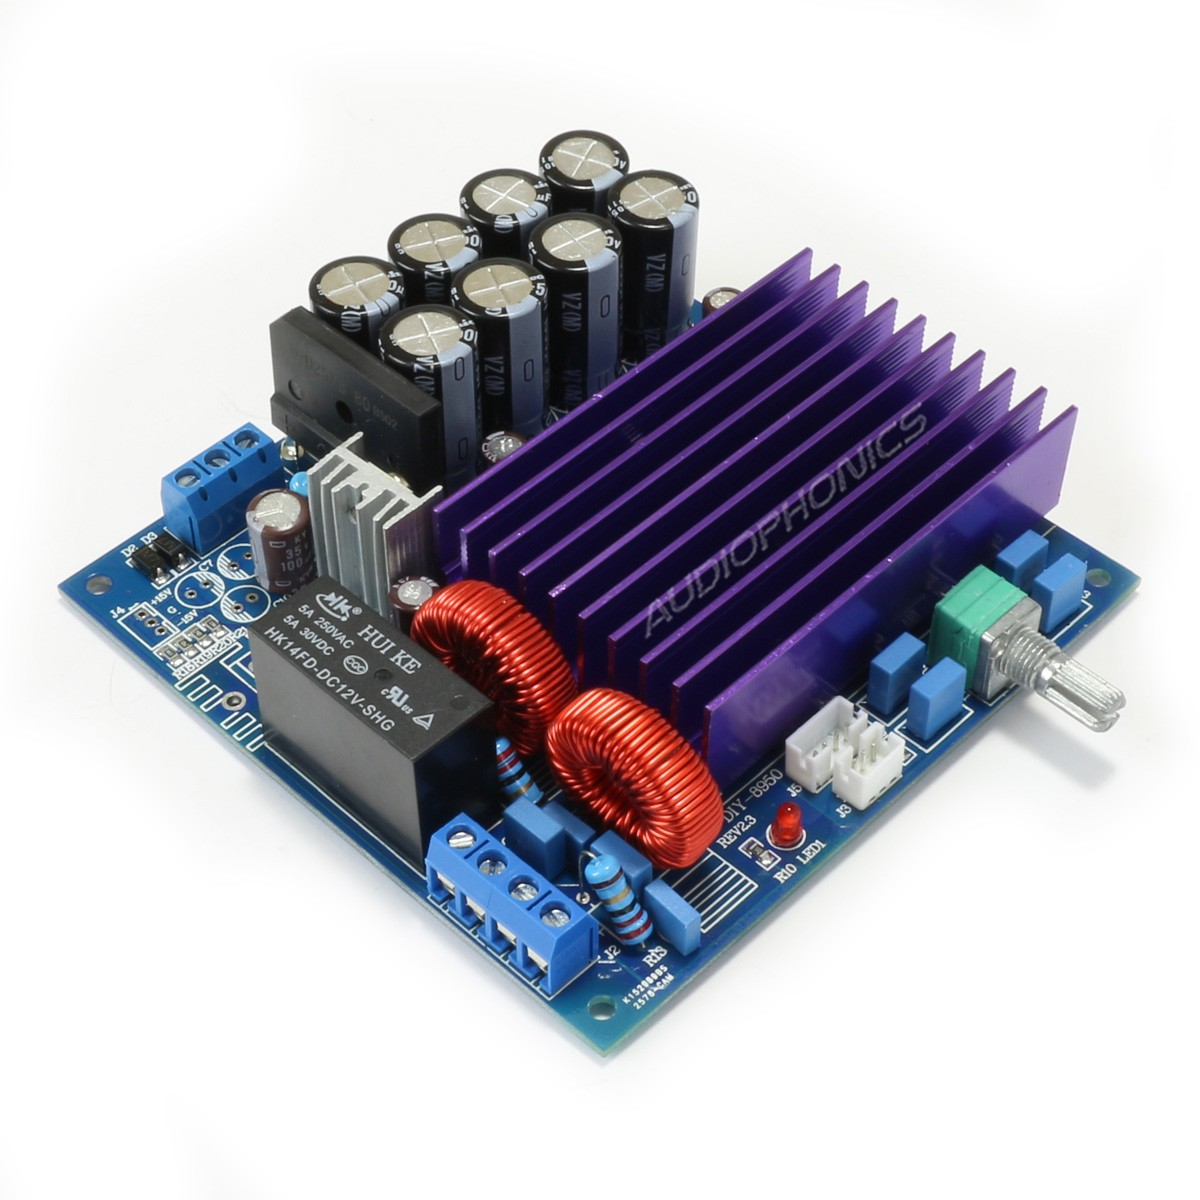 FX-AUDIO M-DIY TDA8950 Class D Amplifier Board 2x170W 300W BTL 4 Ohm